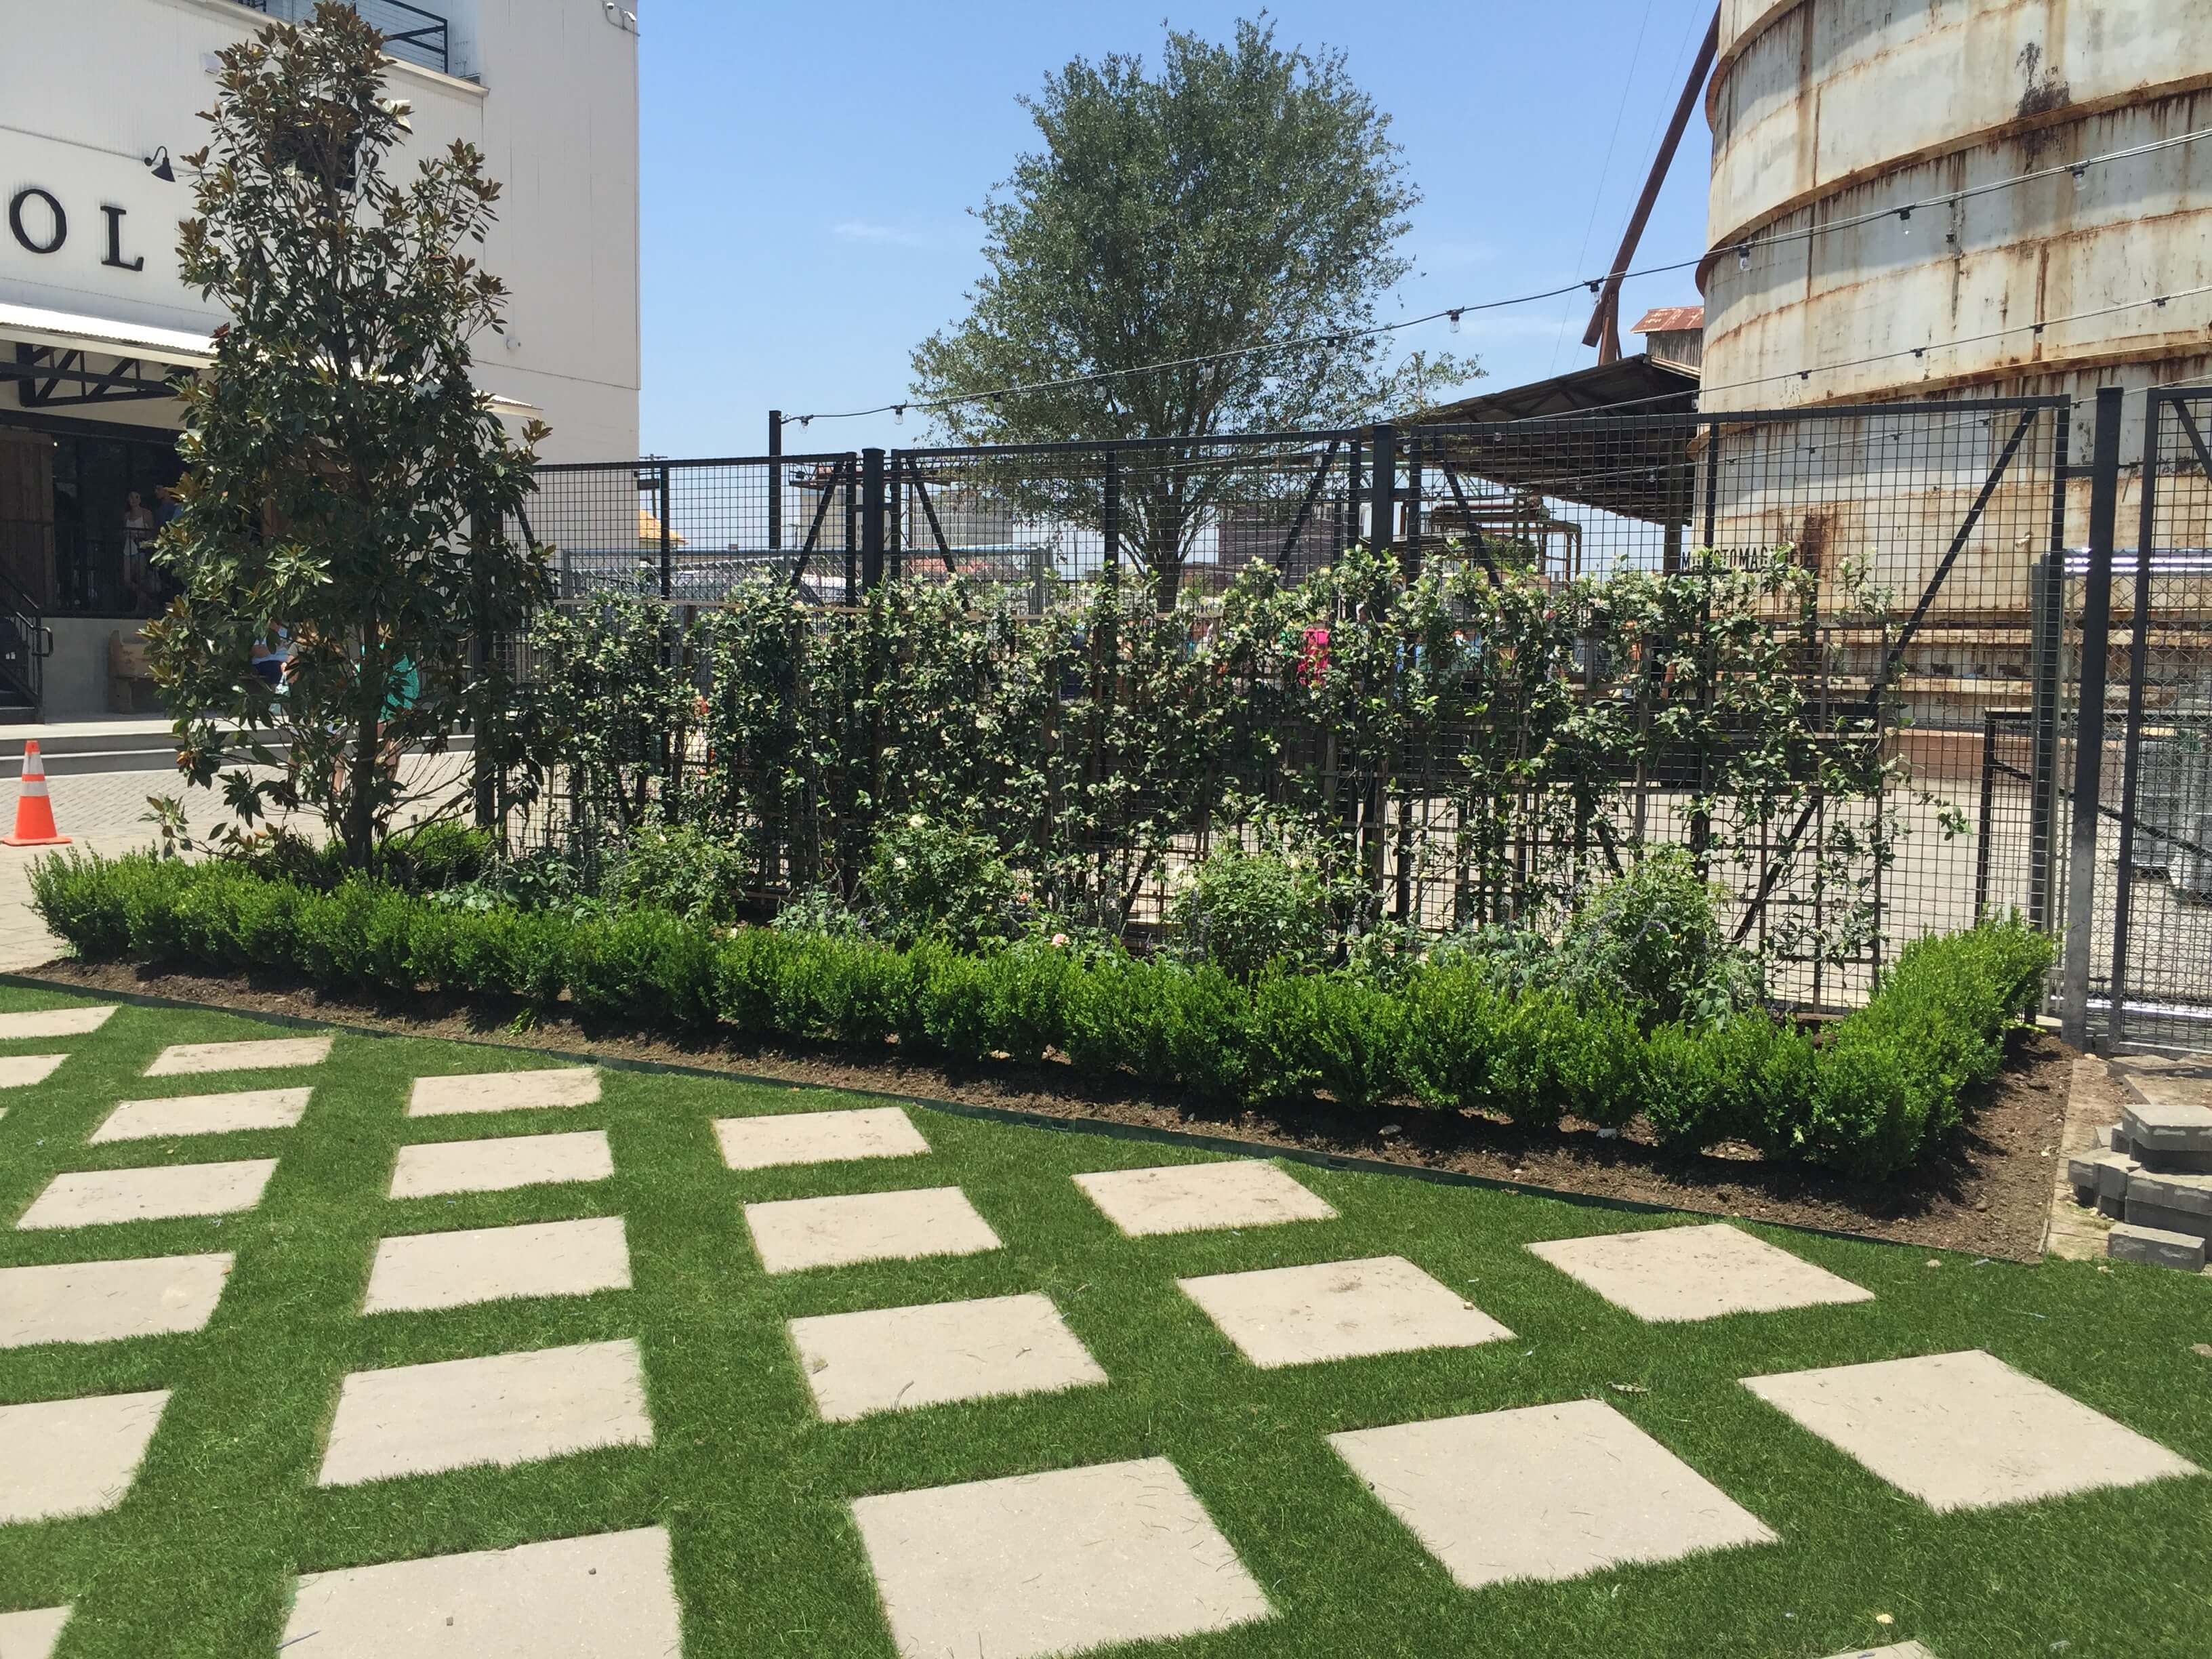 Landscaping Design at Magnolia Silos Waco Texas | Fitzgeralds Landscaping, Lawn Care, Irrigation, & Tree Services in Waco